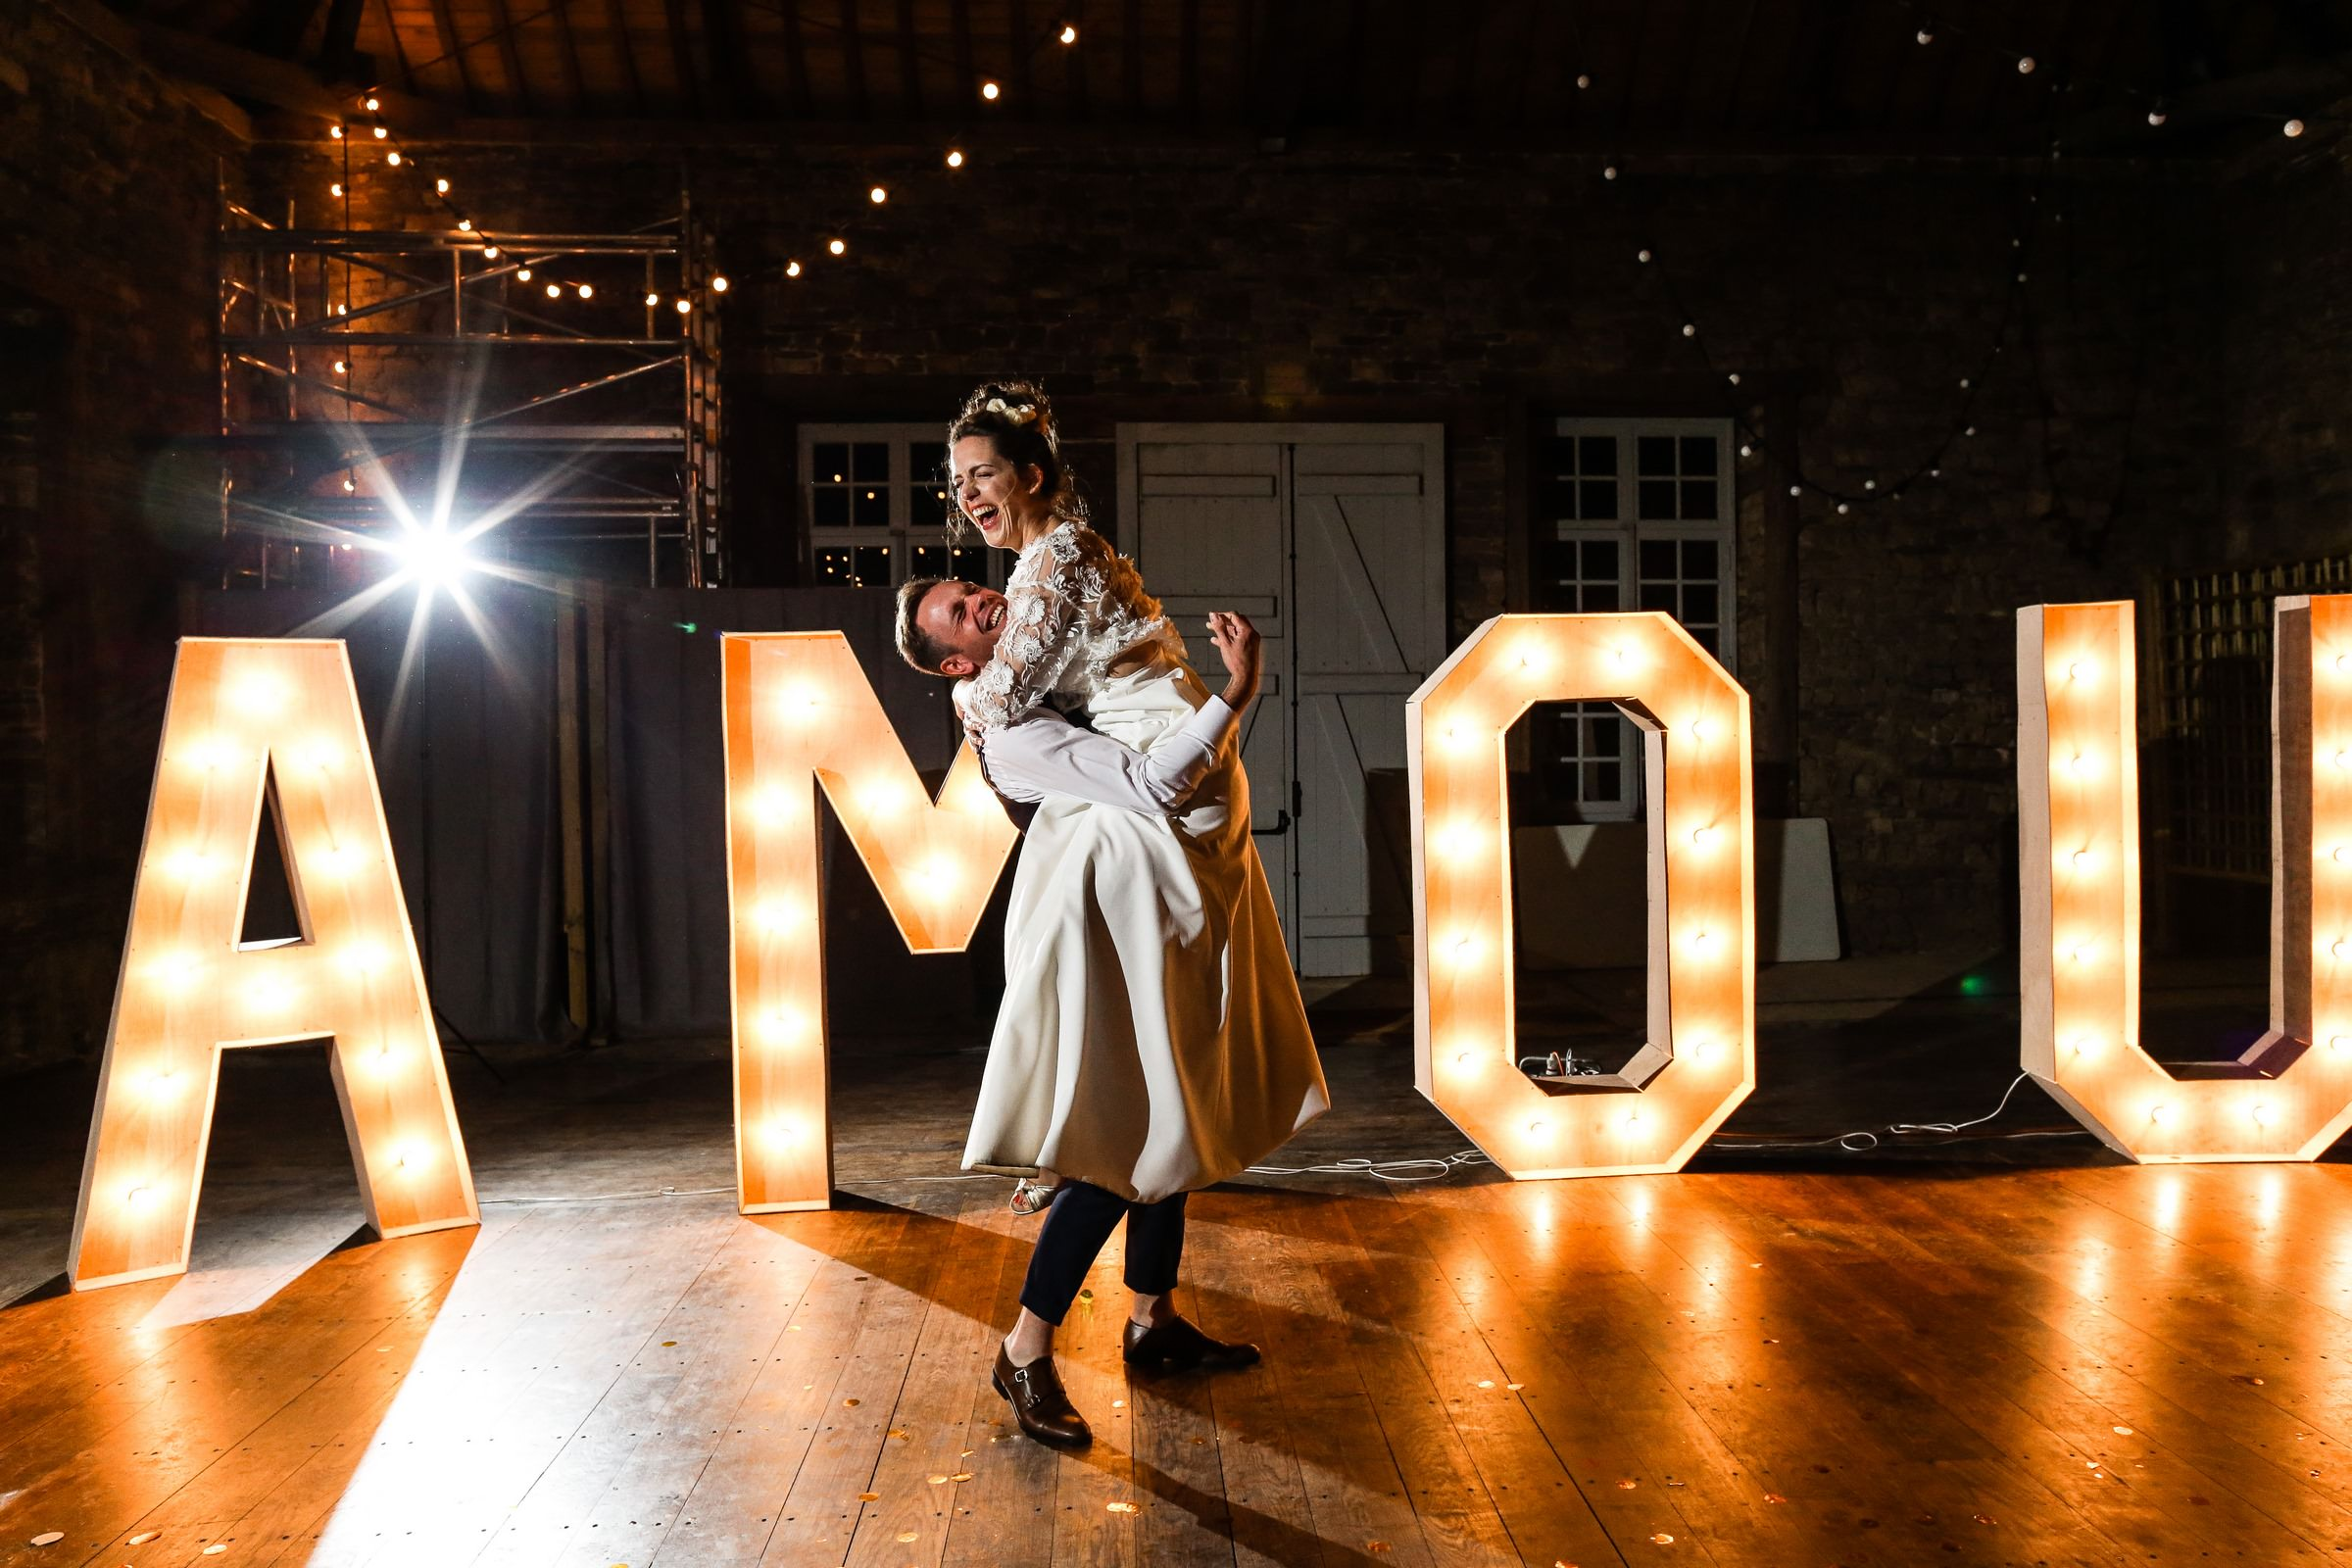 bride and grooms first dance- photo by Amandine Ropars, france